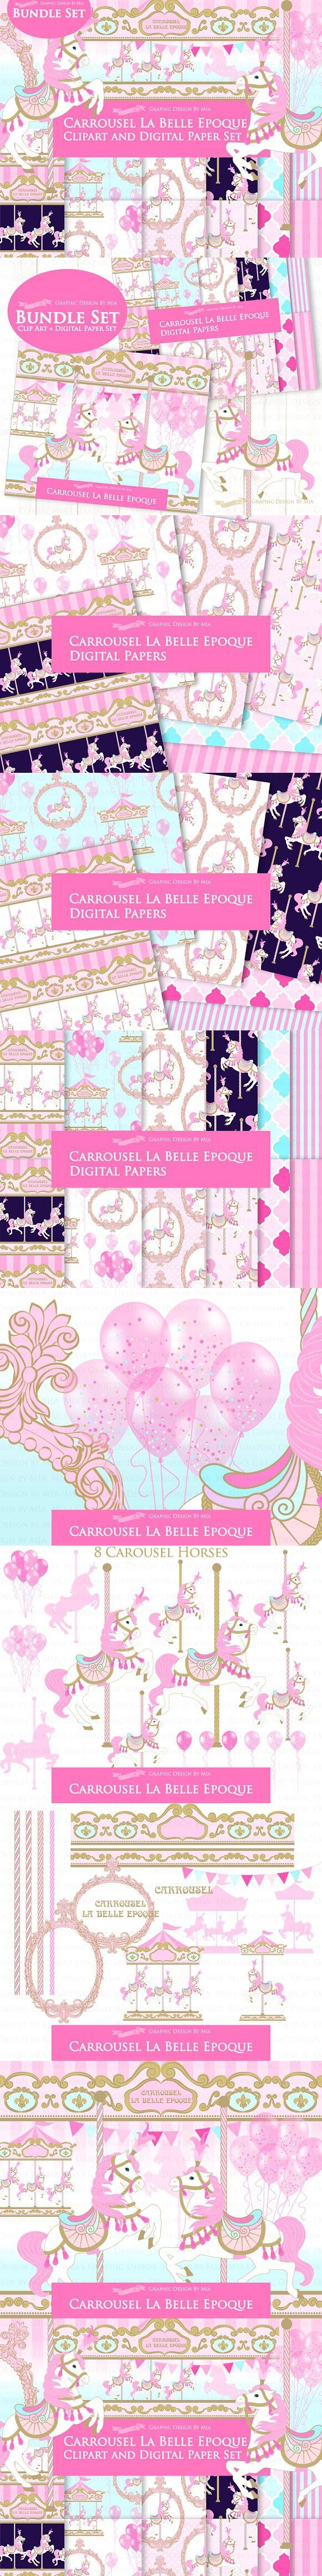 medium resolution of pink carousel clipart pattern